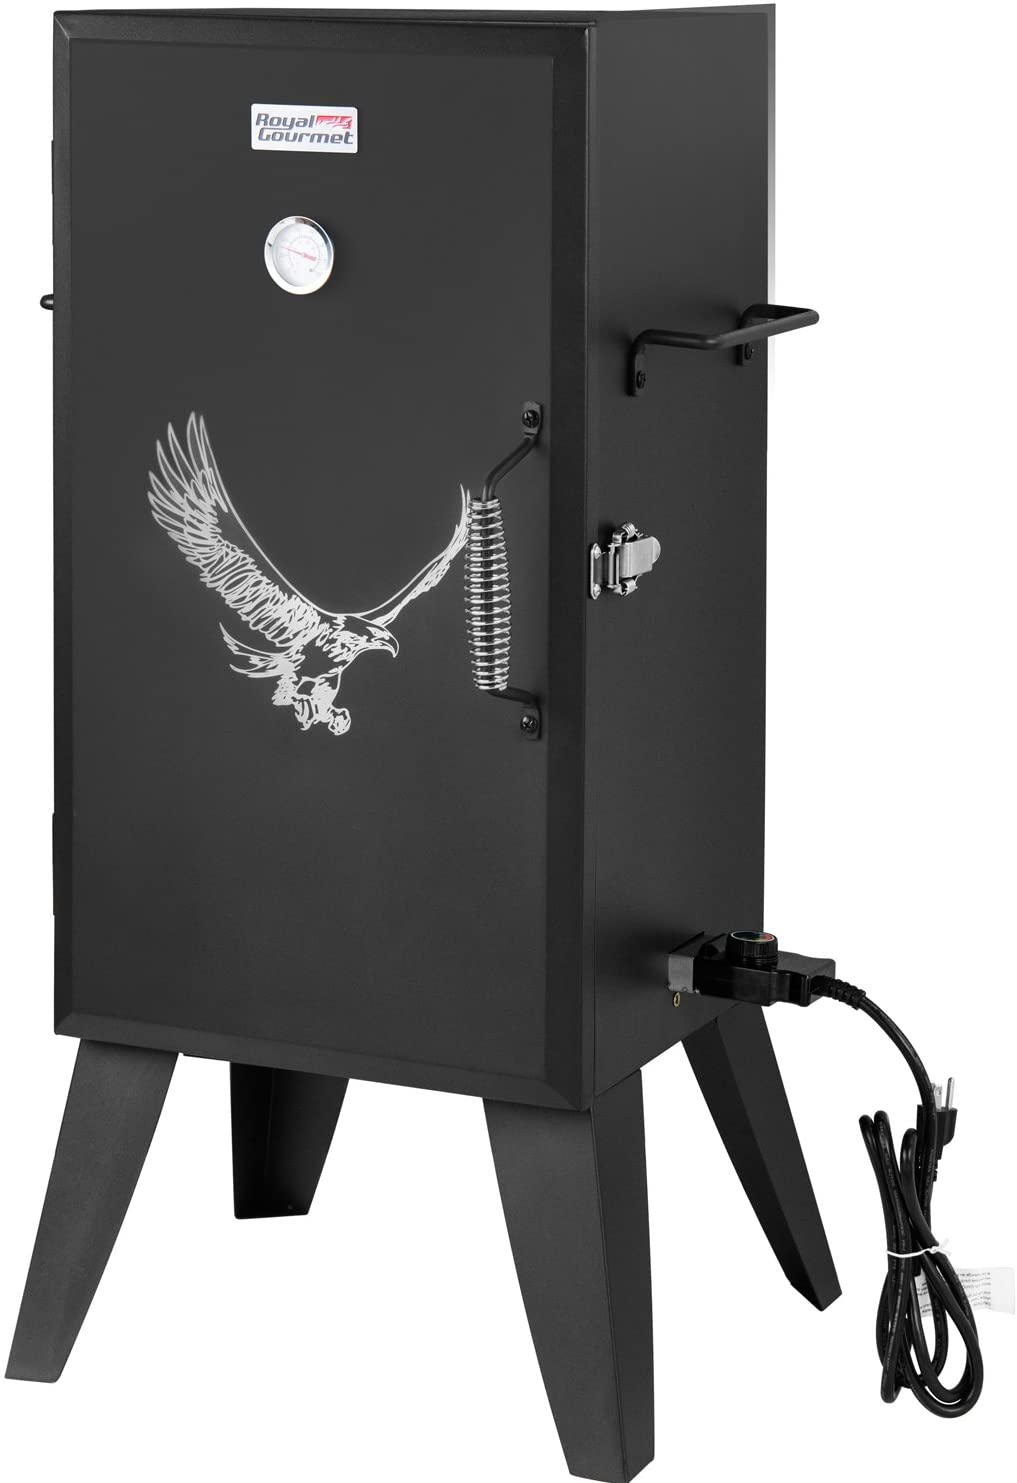 Royal Gourmet SE2801 Electric Smoker with Adjustable Temperature Control review